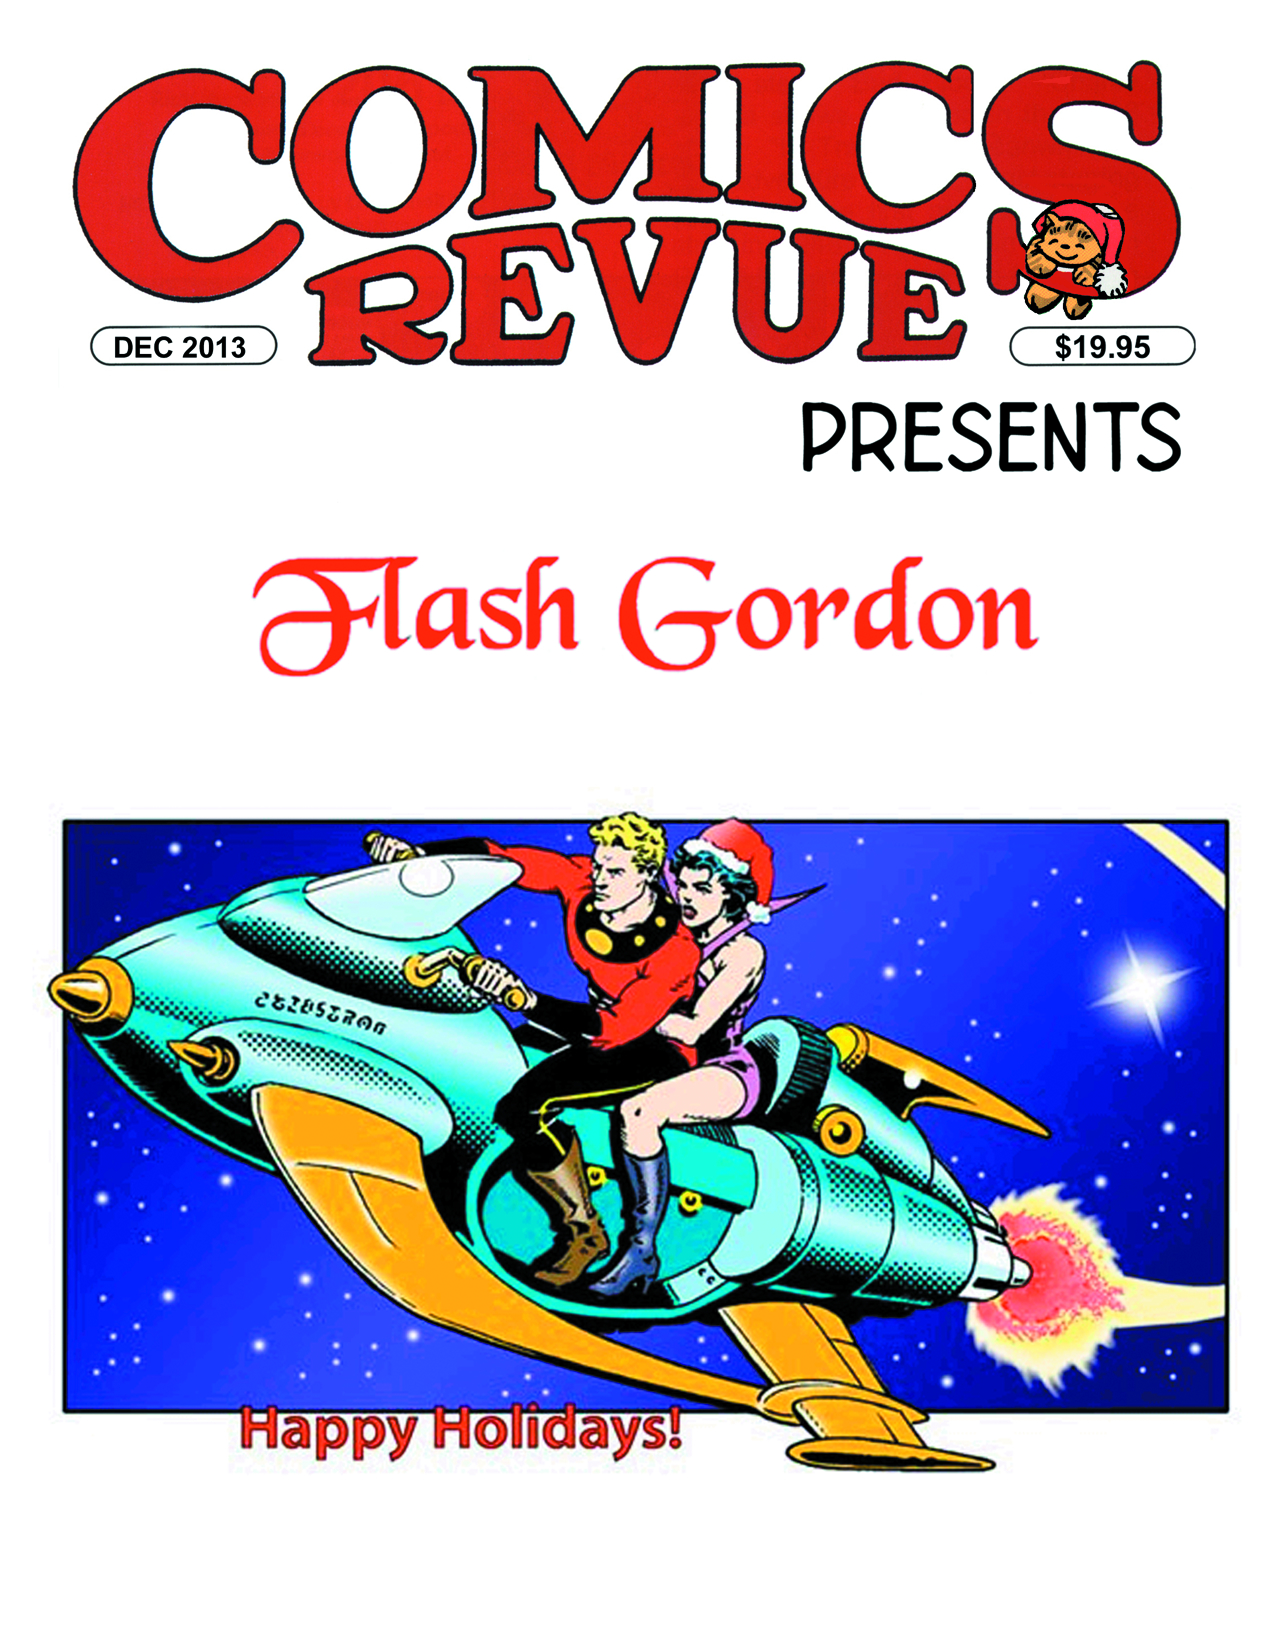 COMICS REVUE PRESENTS DEC 2013